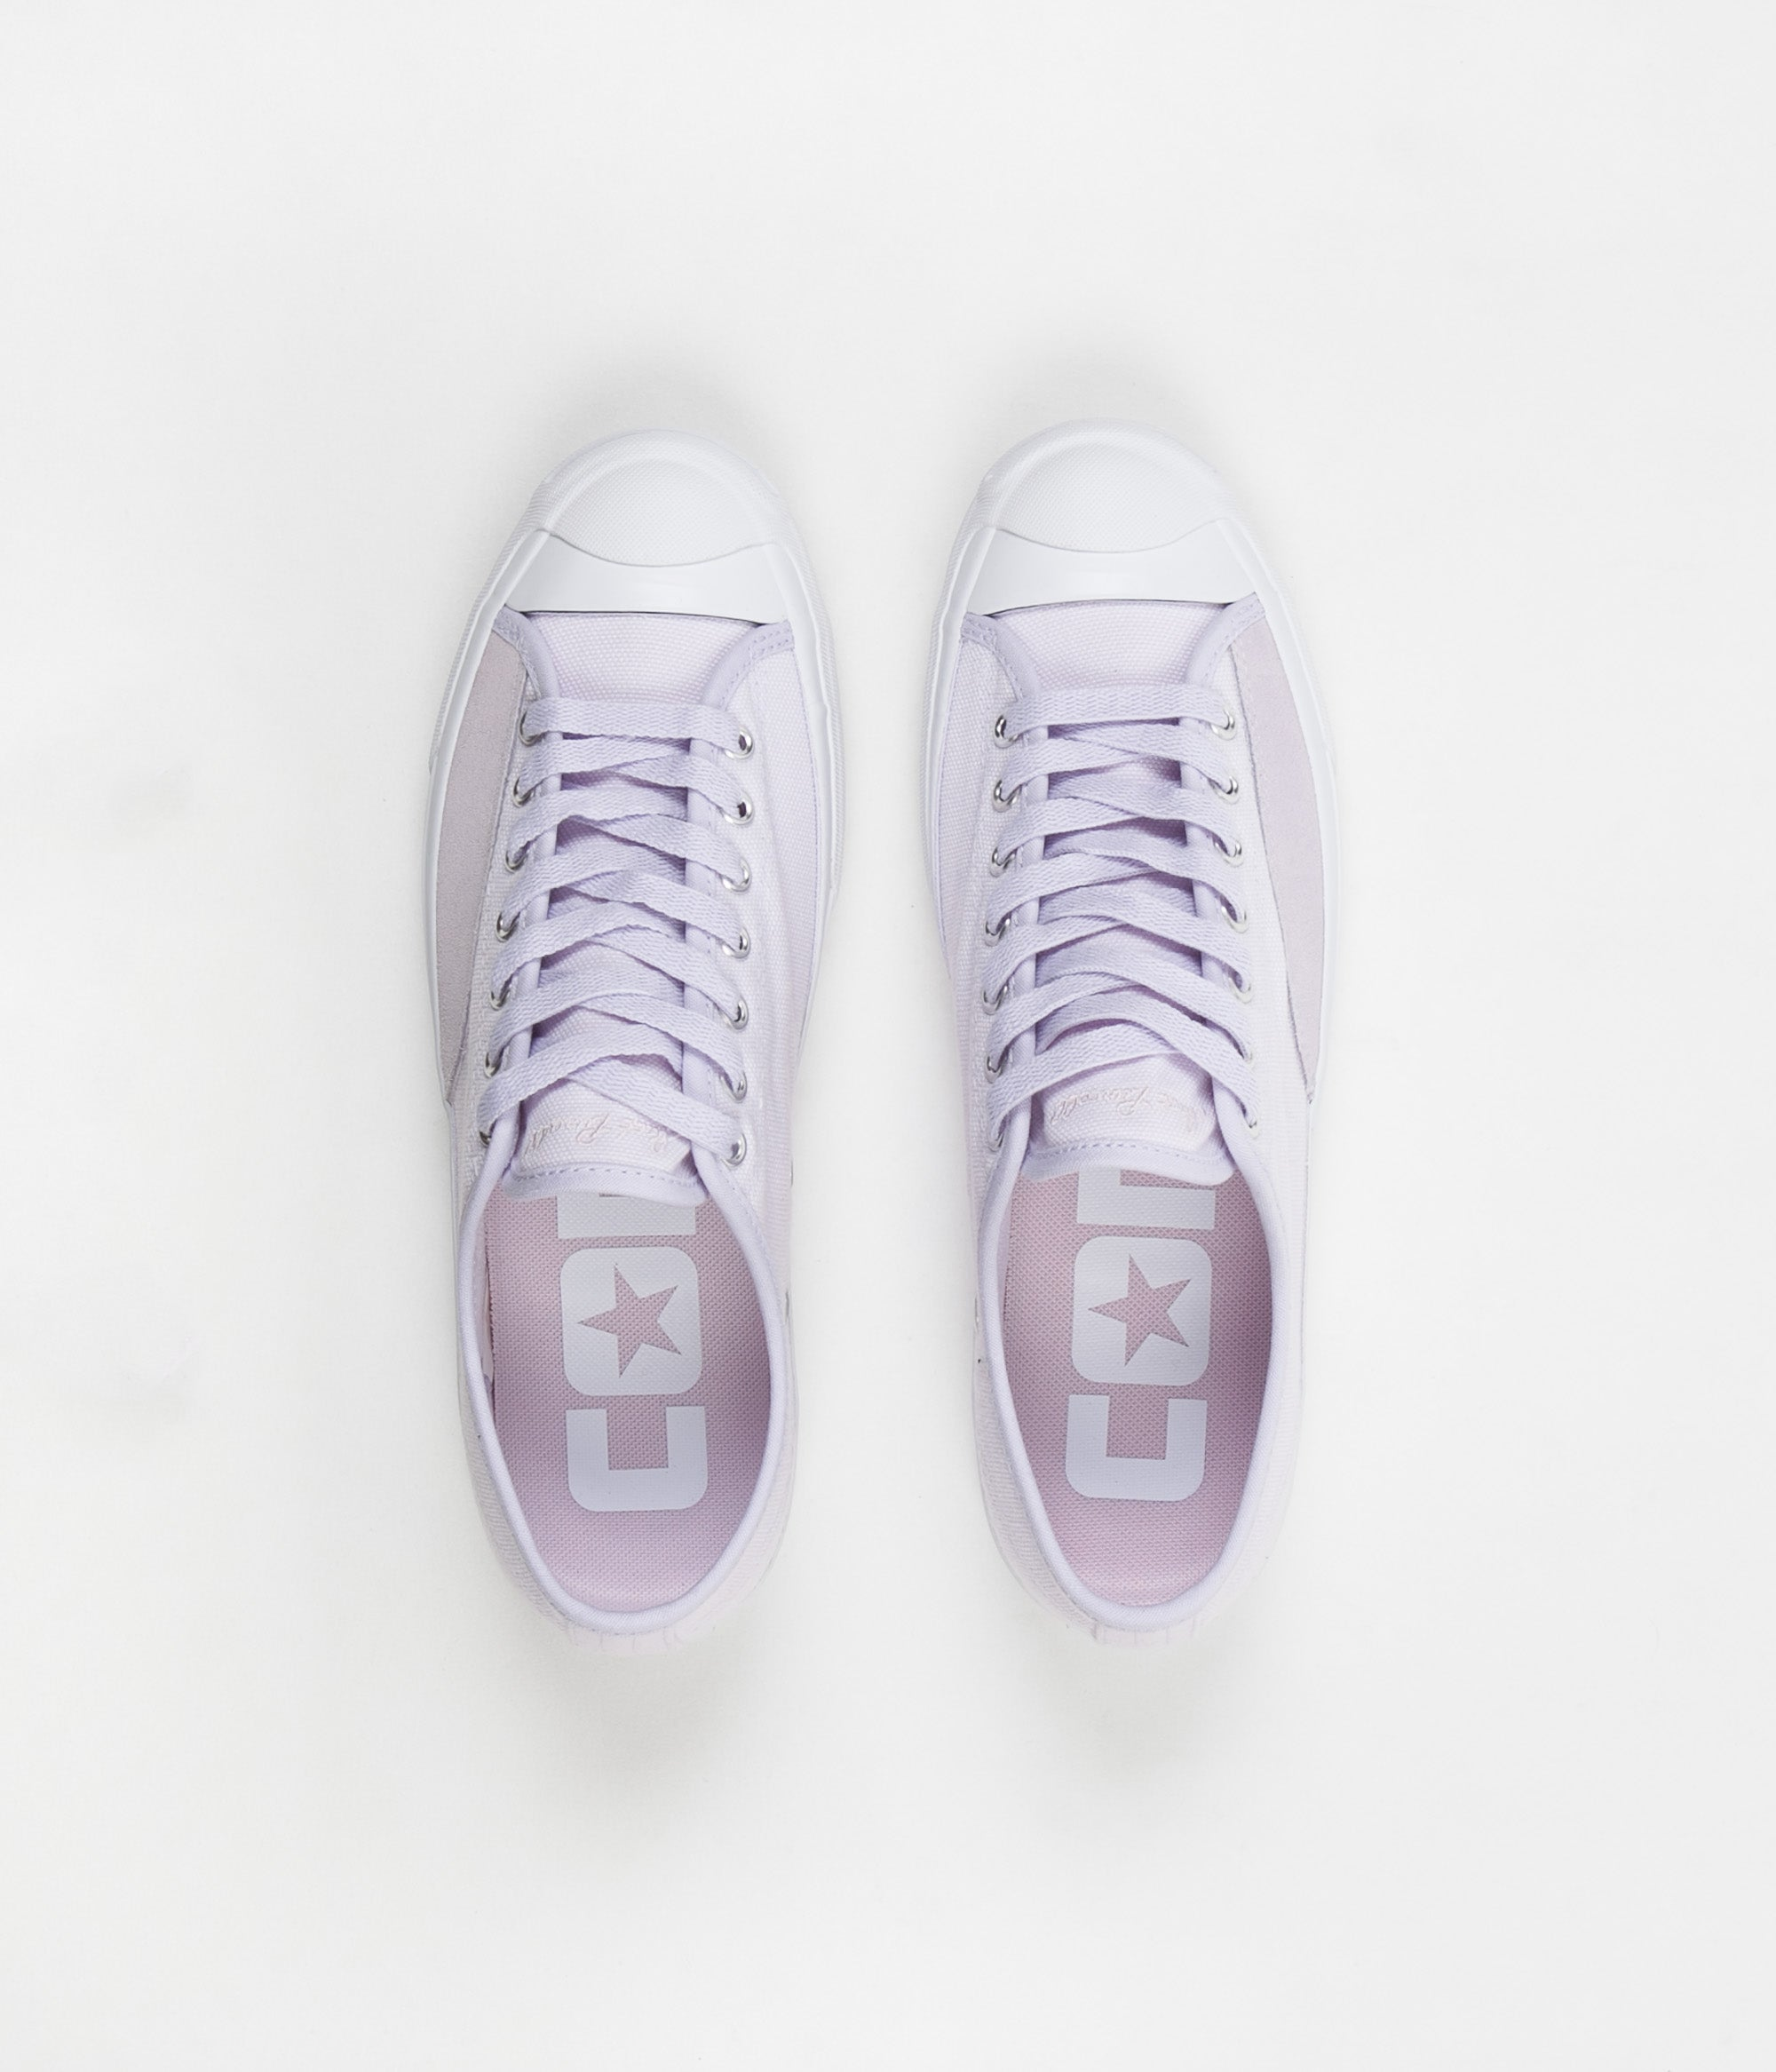 Converse JP Pro Ox Shoes - Barely Grape   Barely Grape ... e1eaf2f6d